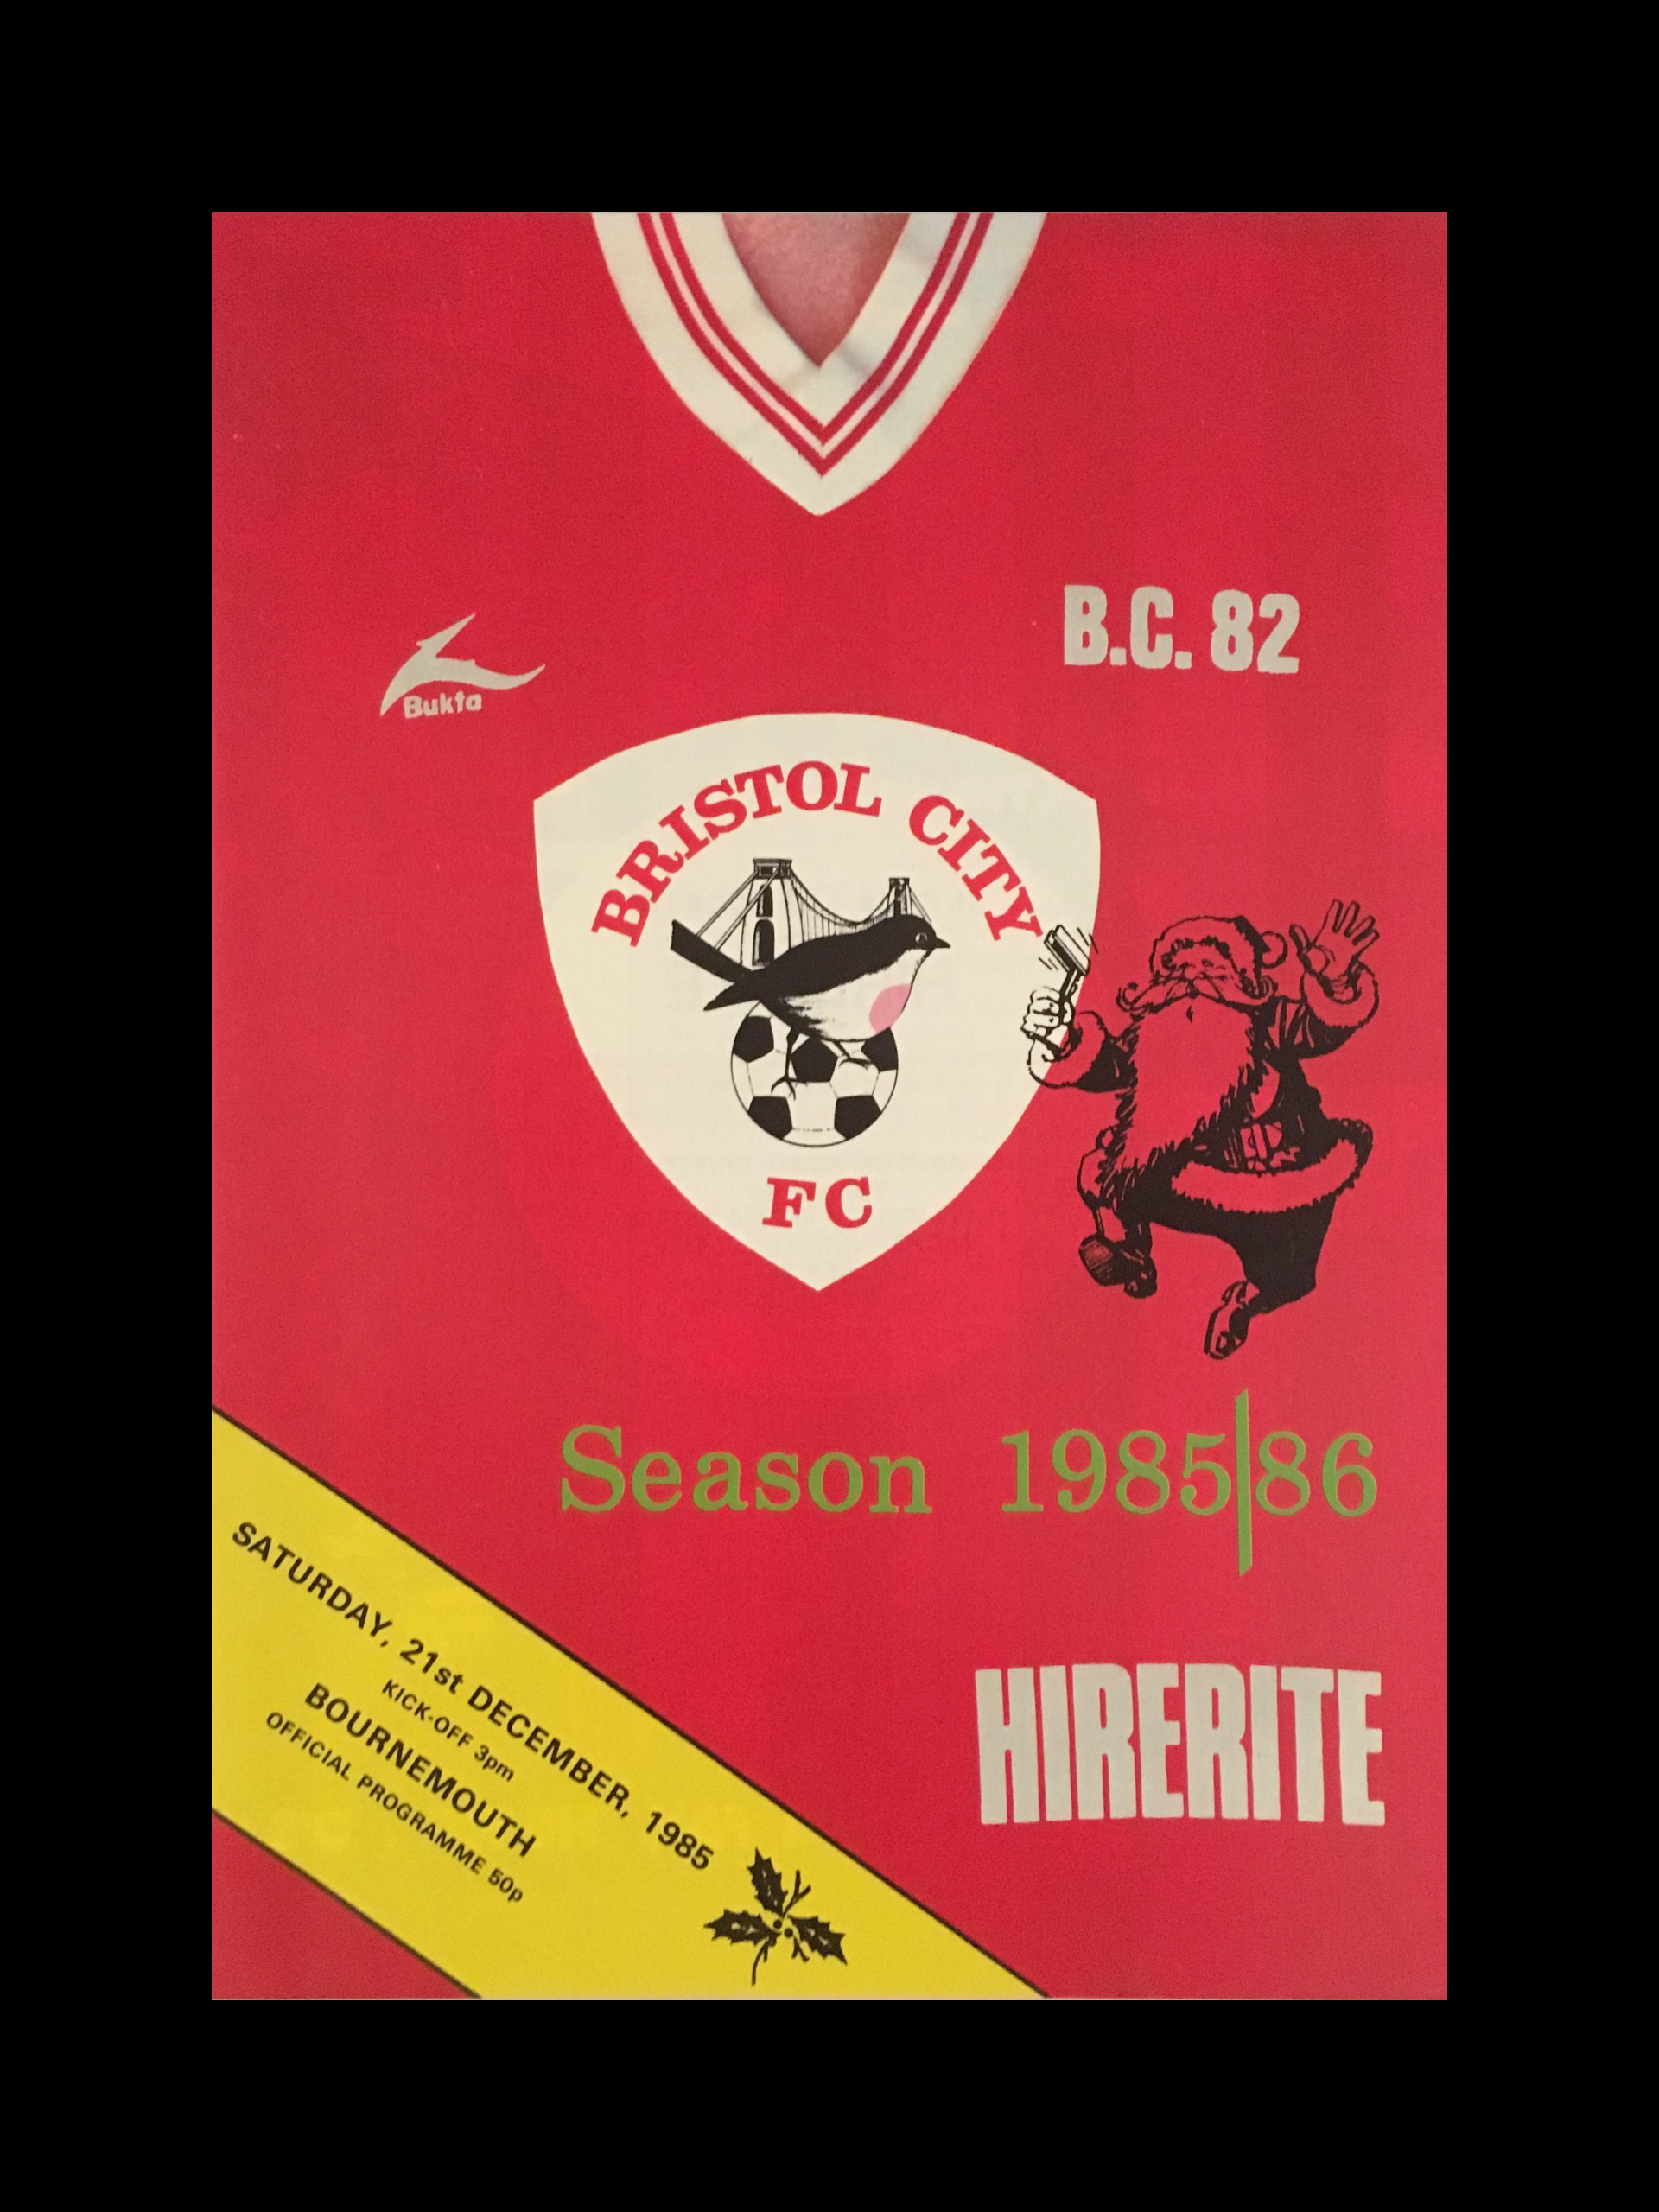 Bristol City v Bournemouth 21-12-85 Programme